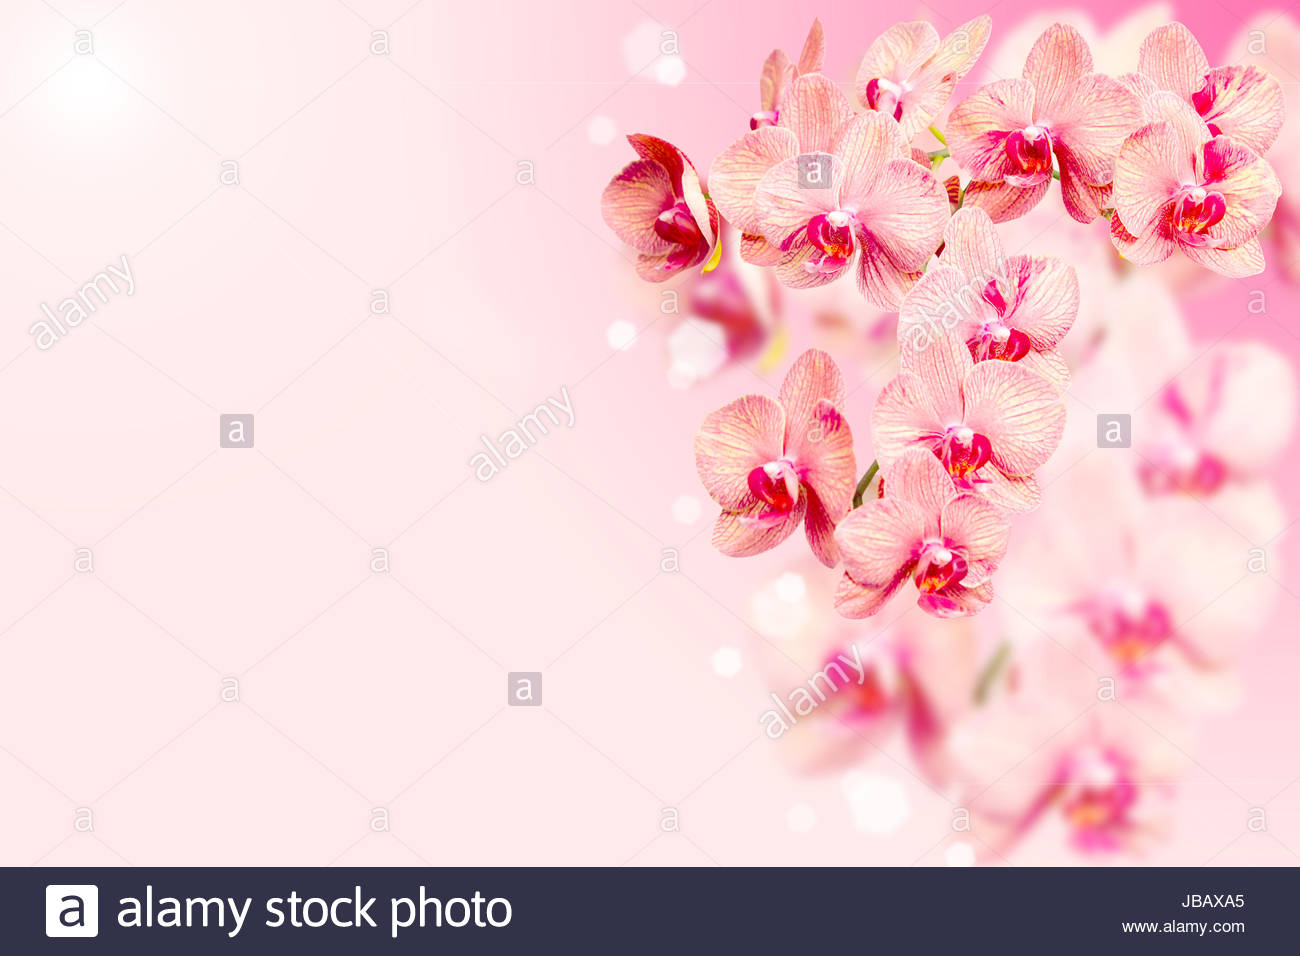 Bunch Of Orchids Flowers On Pink Blurred Background With Free Area